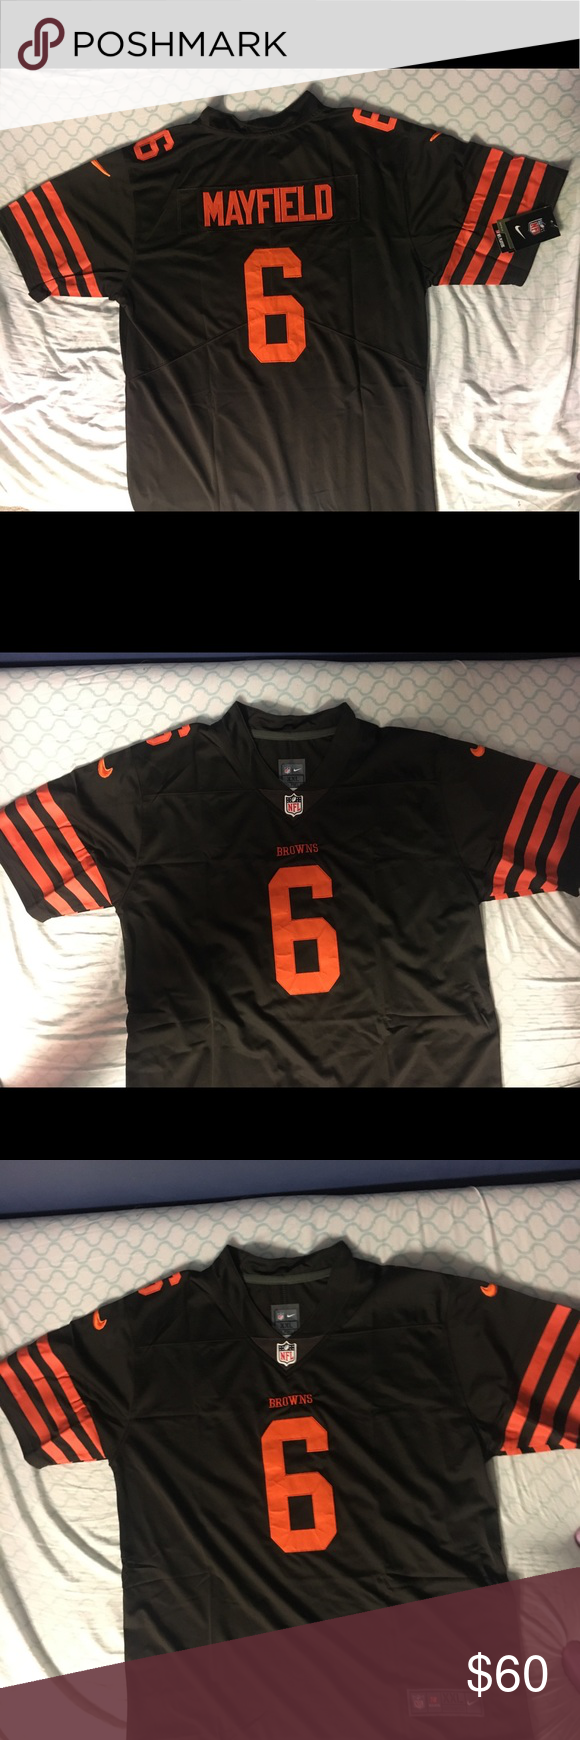 Baker Mayfield Browns jersey Clothes design, Nike shirts